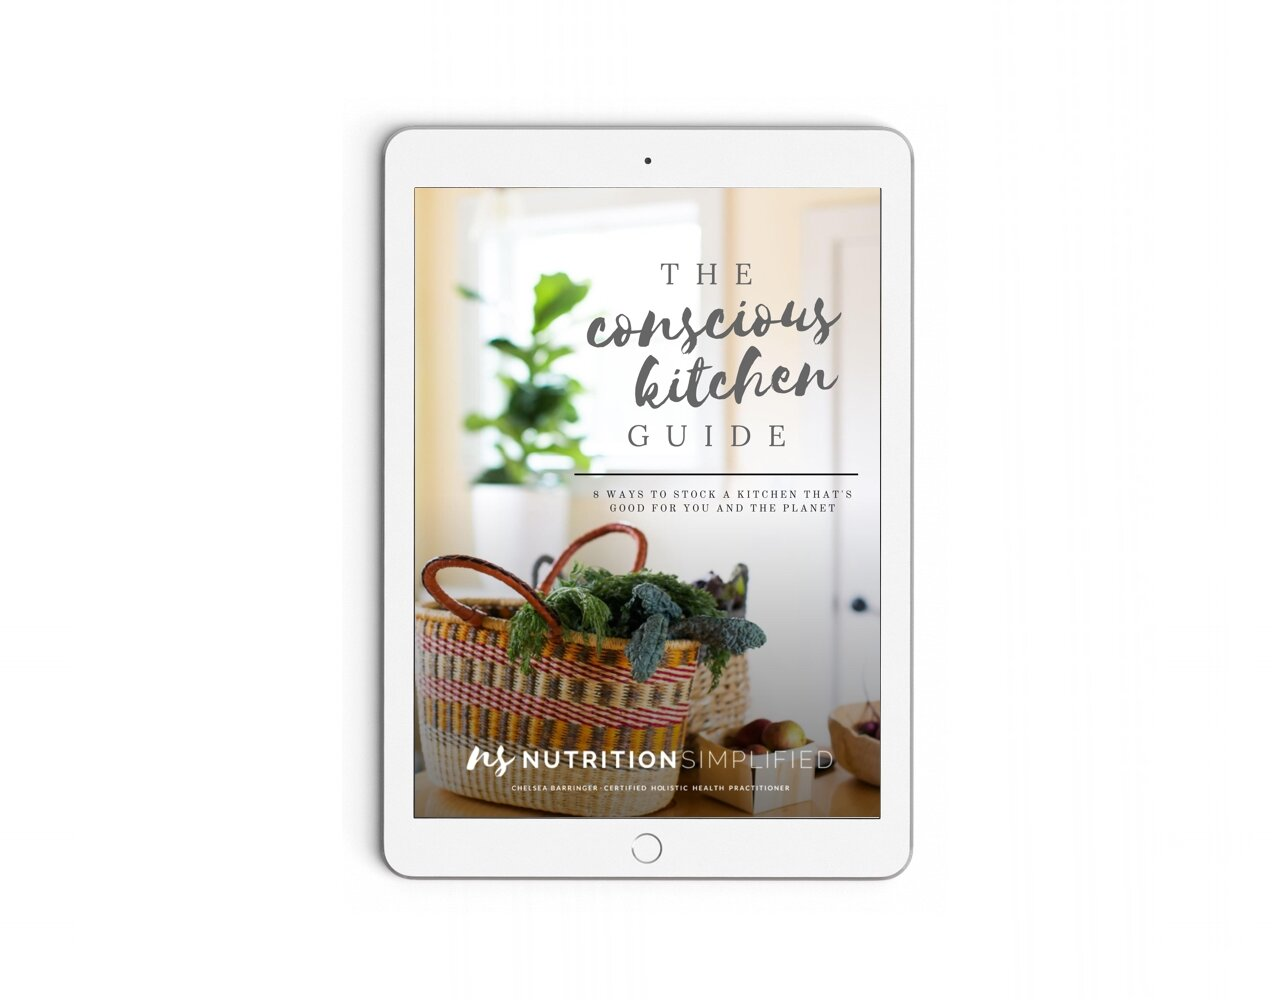 Conscious Kitchen Guide